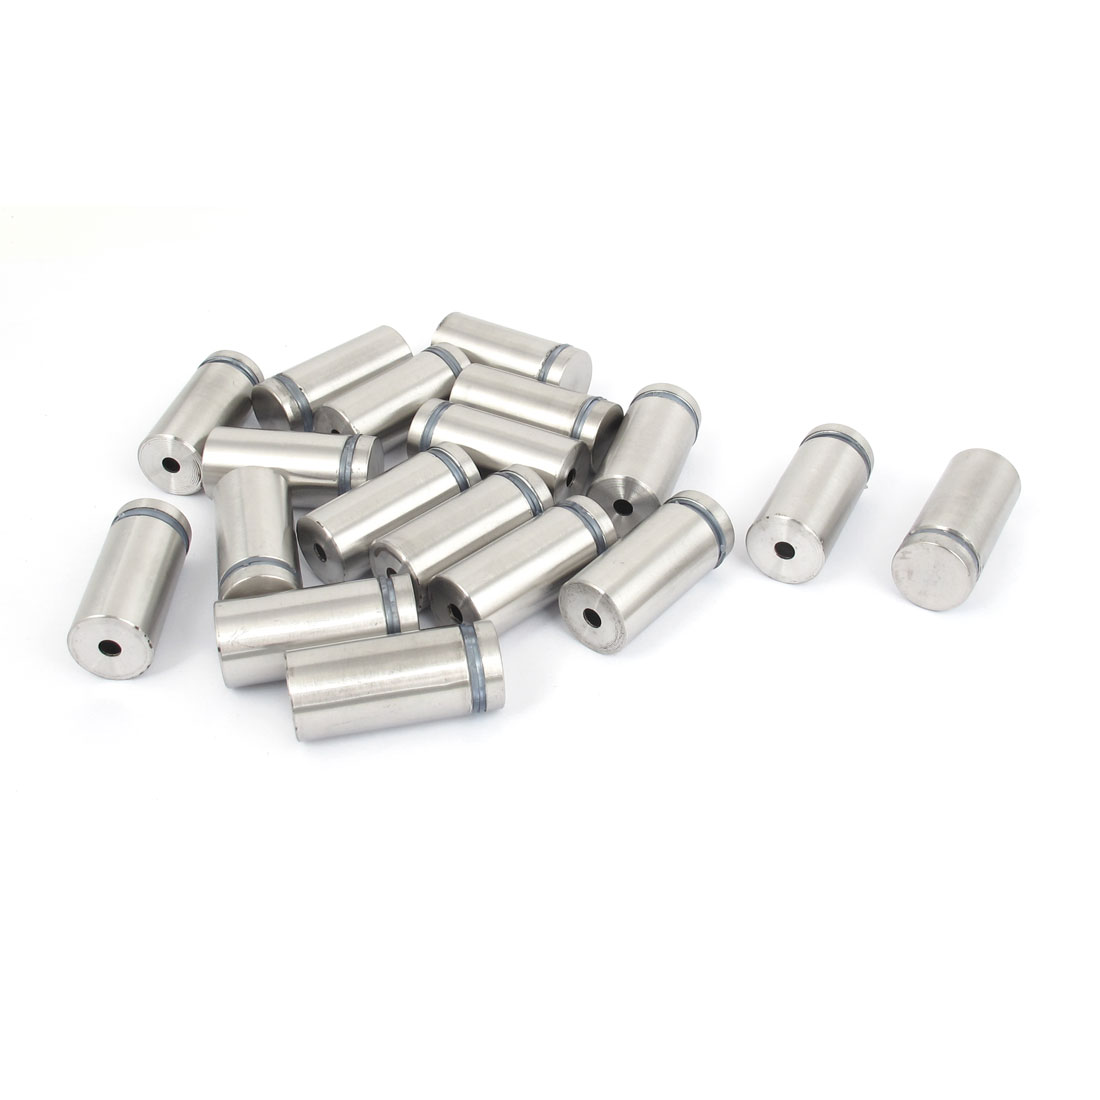 19mm x 40mm Stainless Steel Advertising Frameless Glass Standoff Pins 18pcs